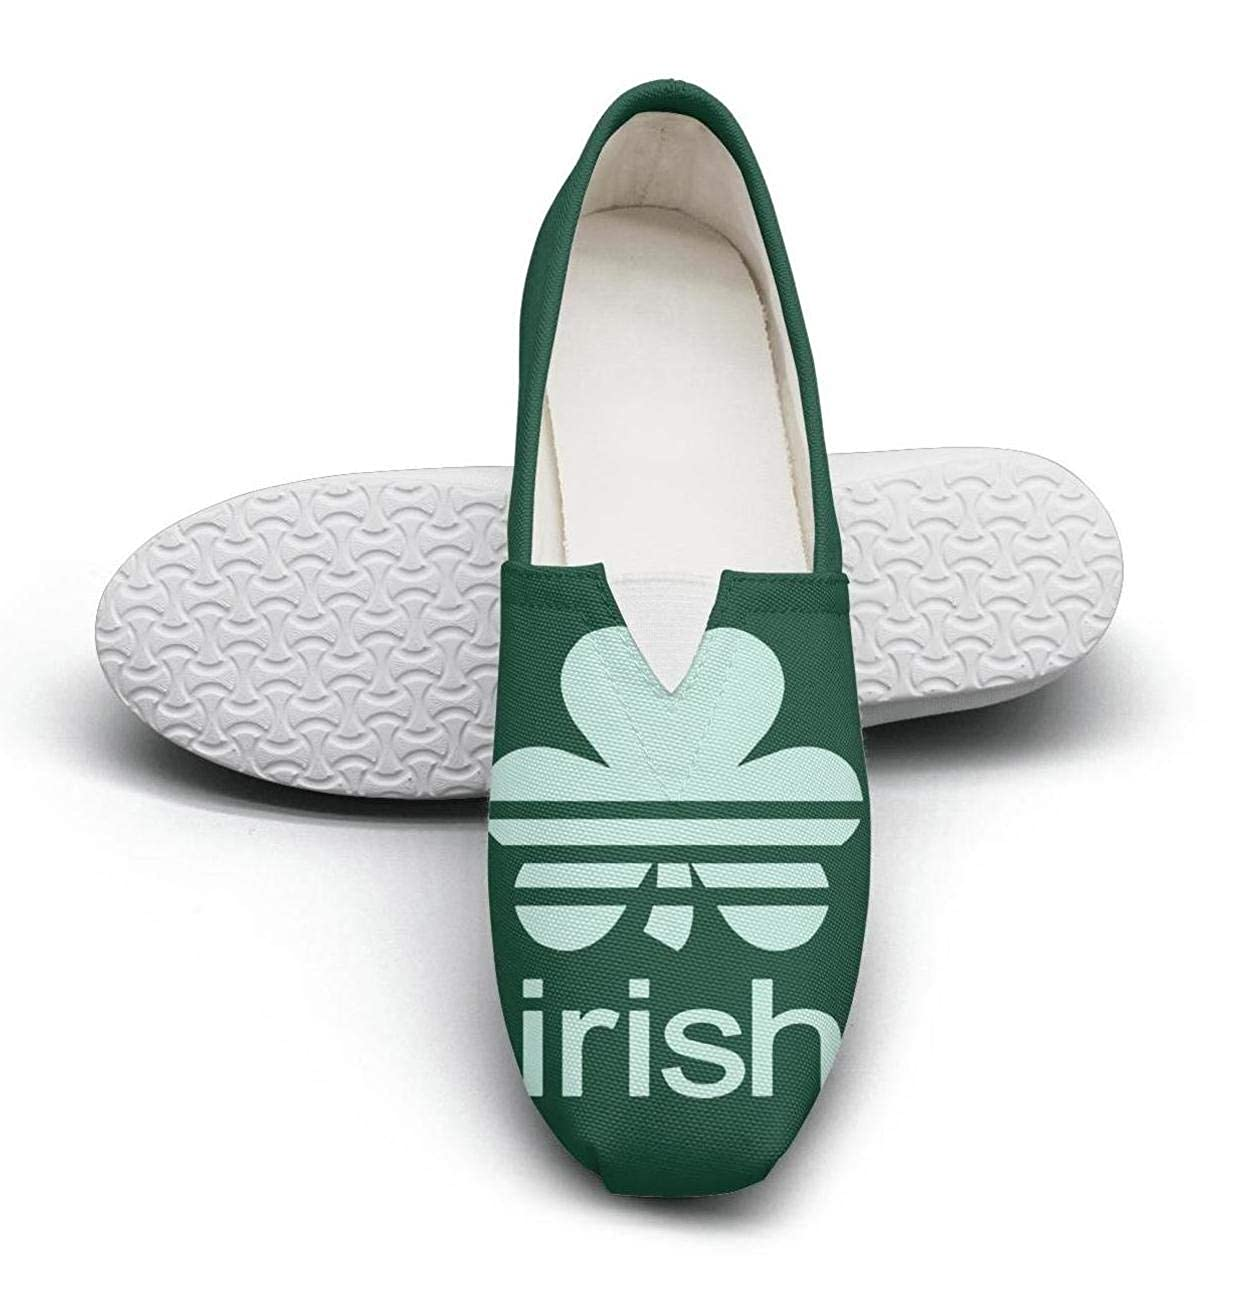 ST Patricks Day Irish Drinking Dilly Dilly Pretty Women Walking Shoes for womens Low Cut Lightweight